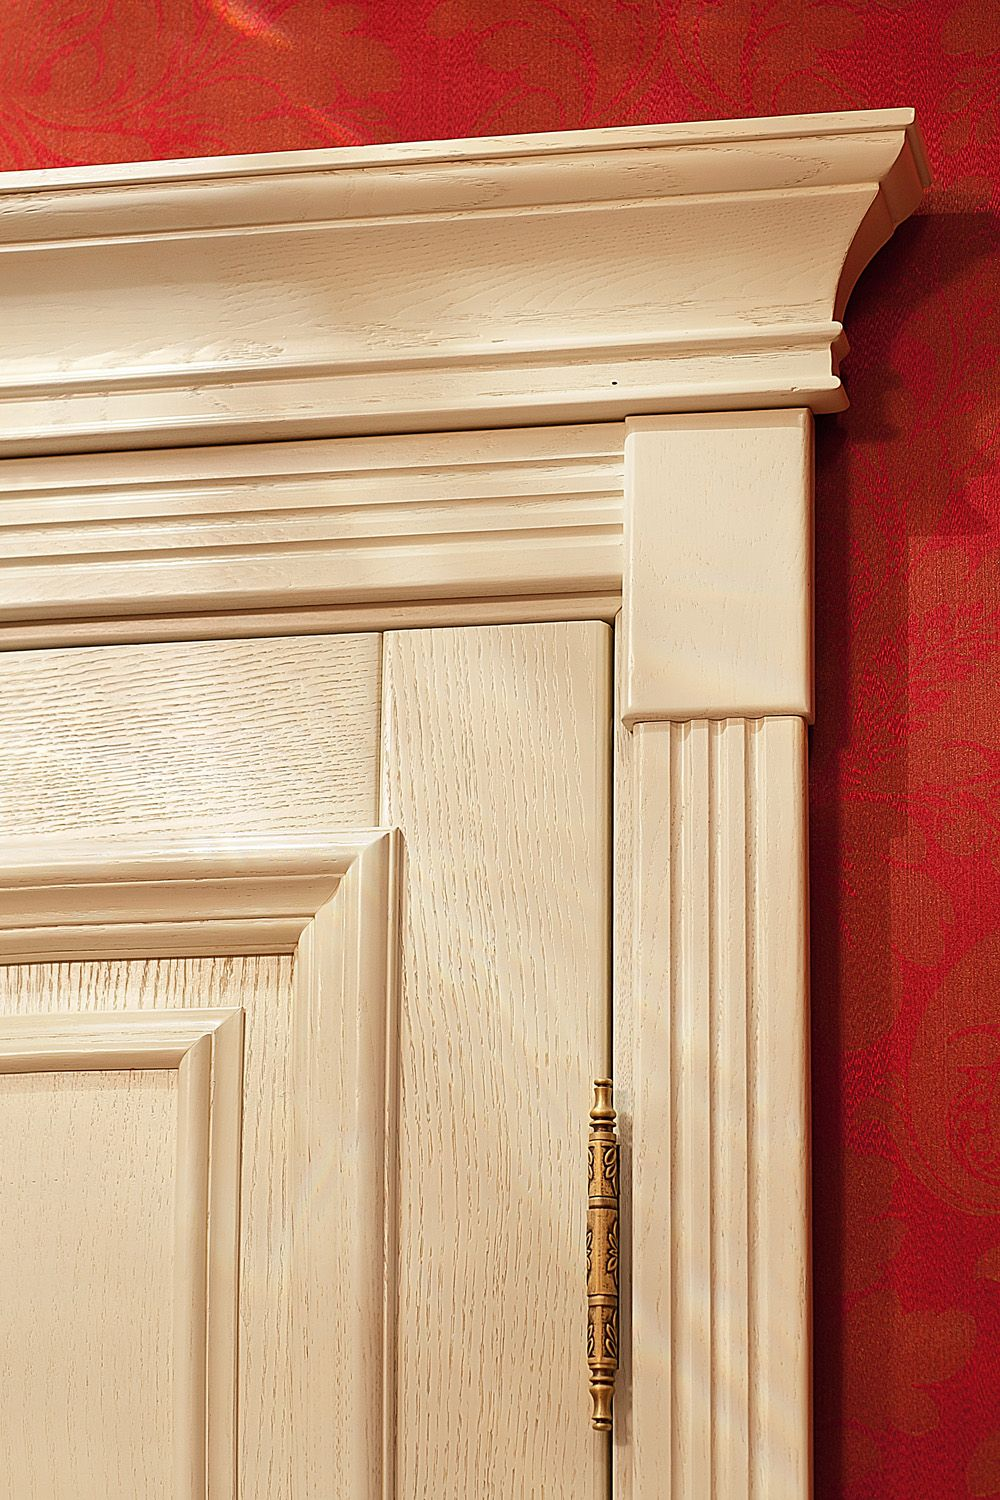 Amazing An Oakwood Door With Decorative Mouldings And A Capital.